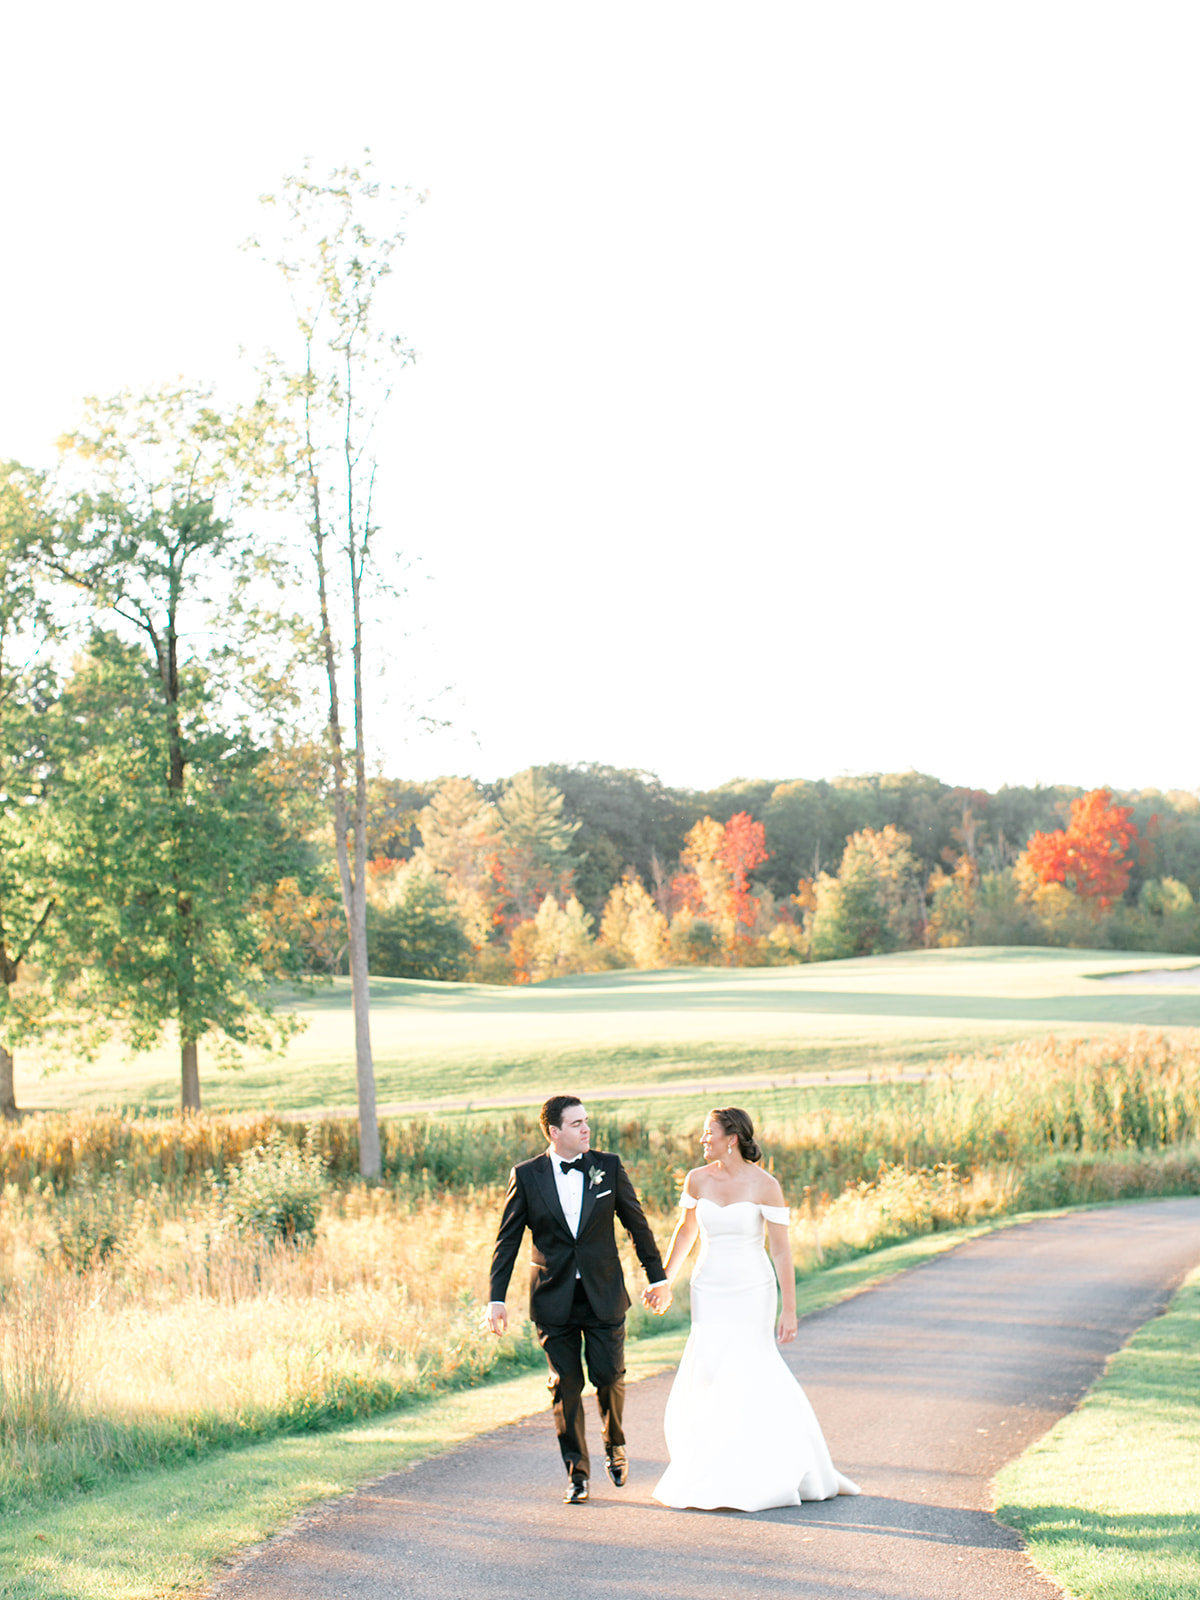 Meg+Greg_Wedding-705